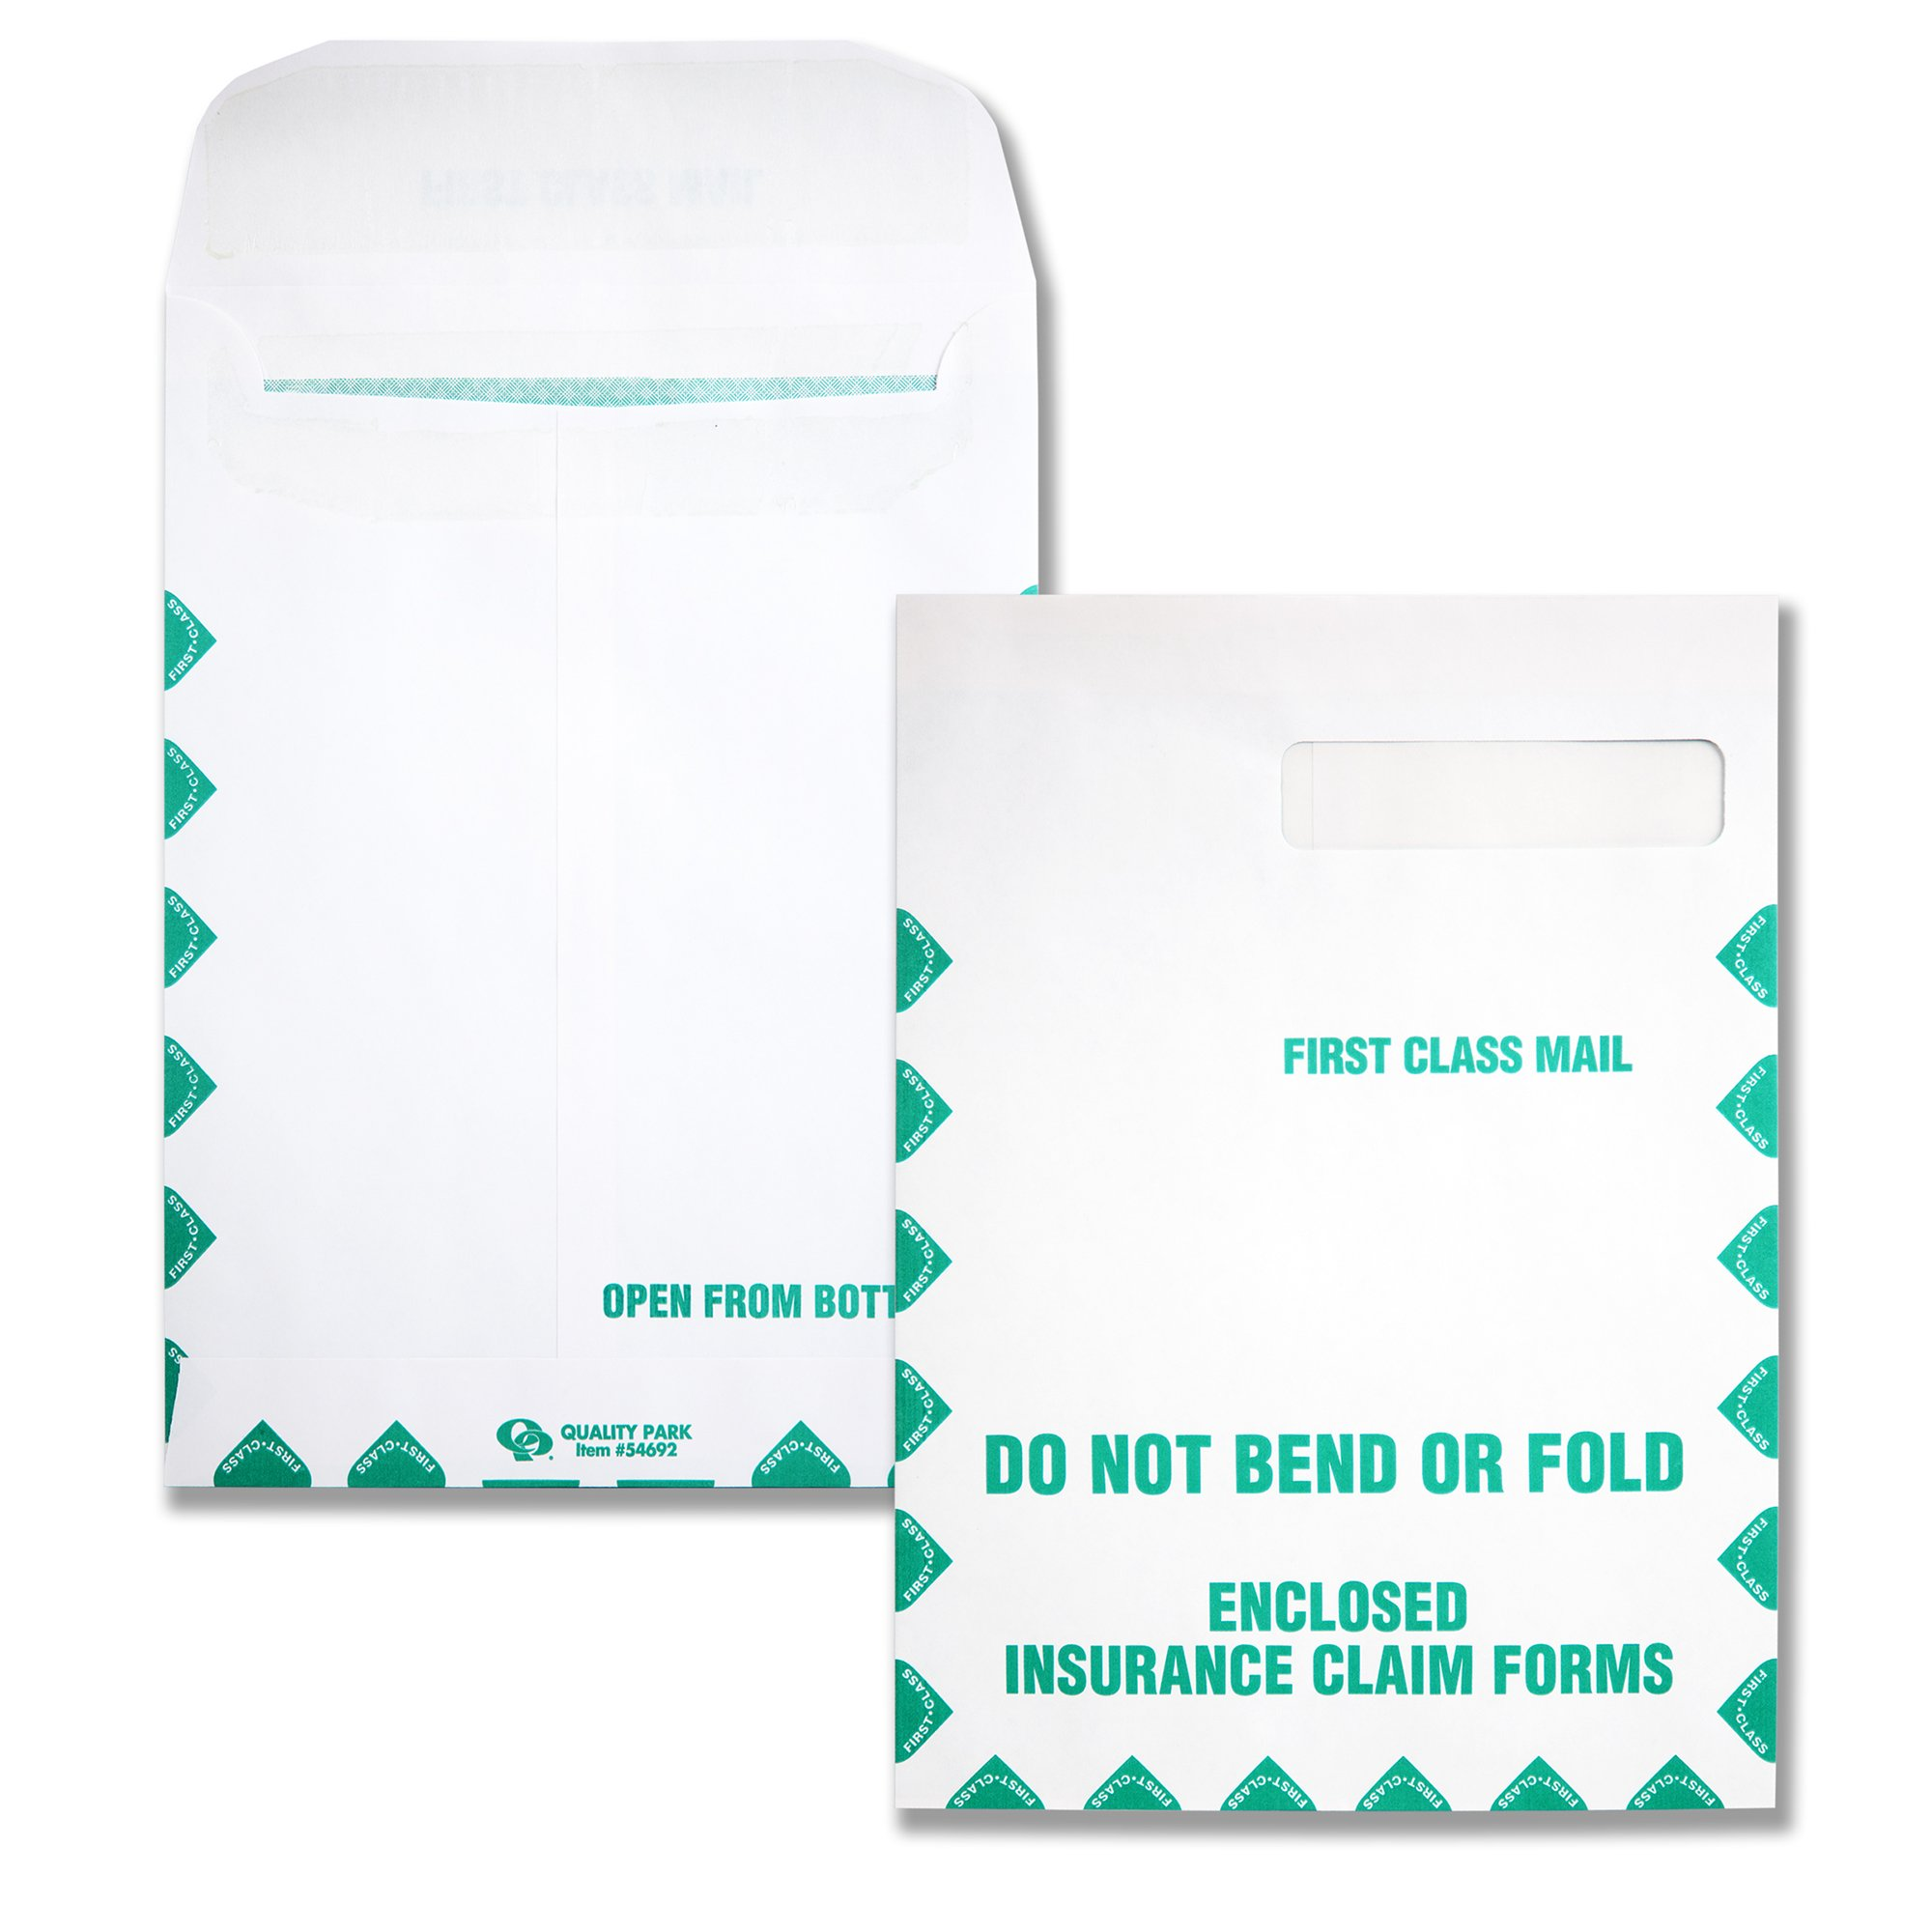 Quality Park, HCFS-1508 Window Envelopes, Redi-Seal, First Class, White, 100 per Box,(54692) by Quality Park